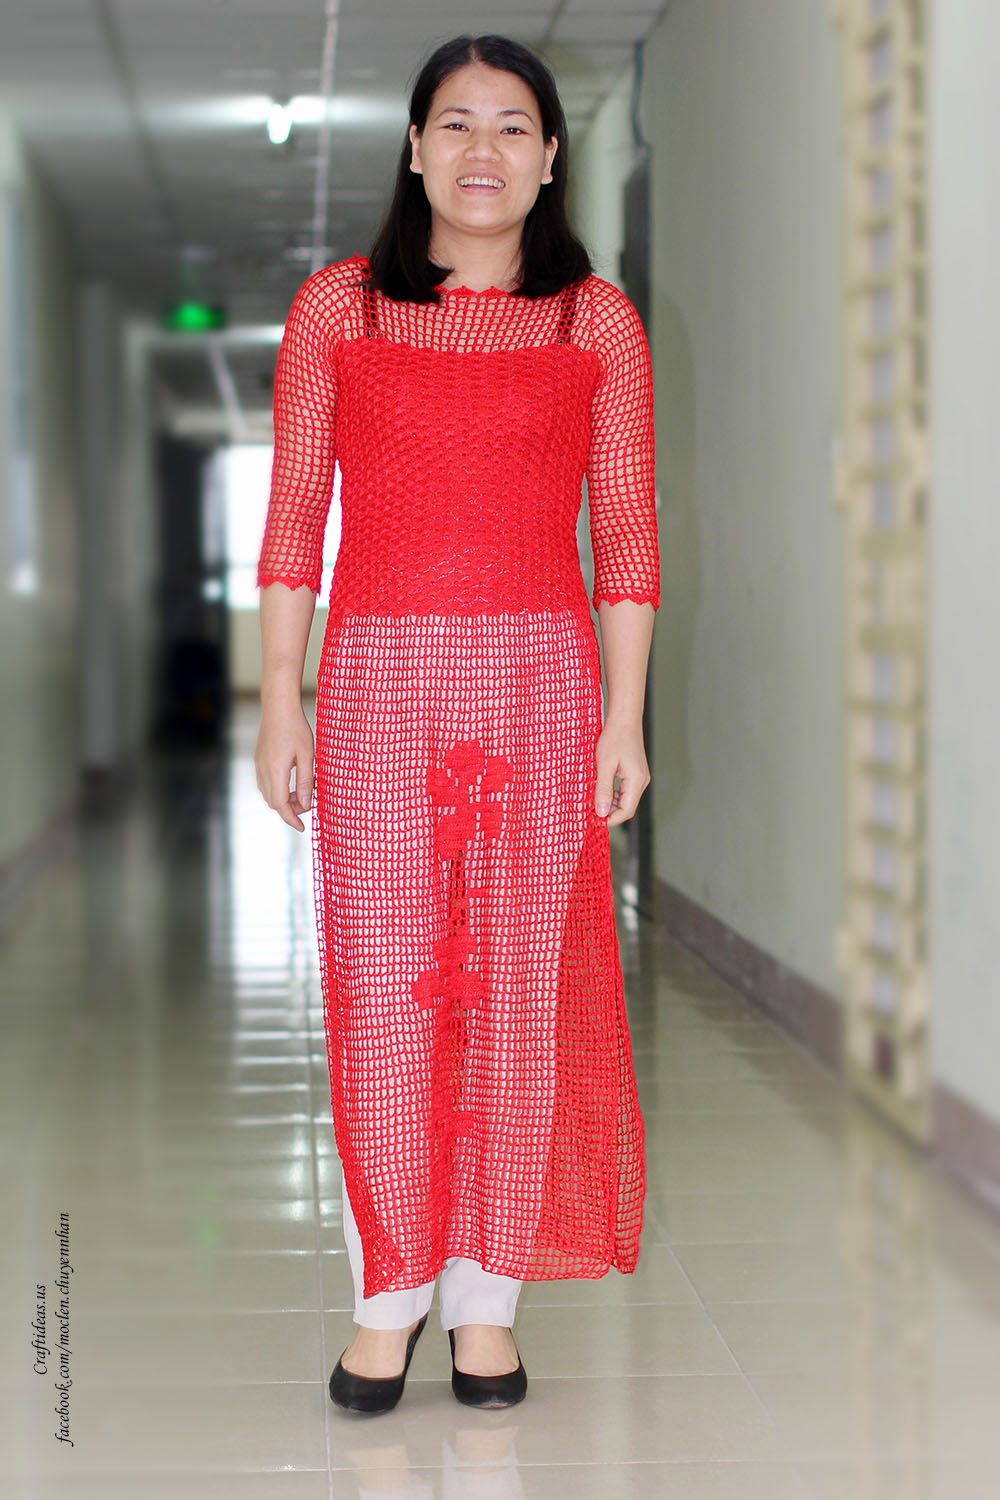 Crochet filet women dress